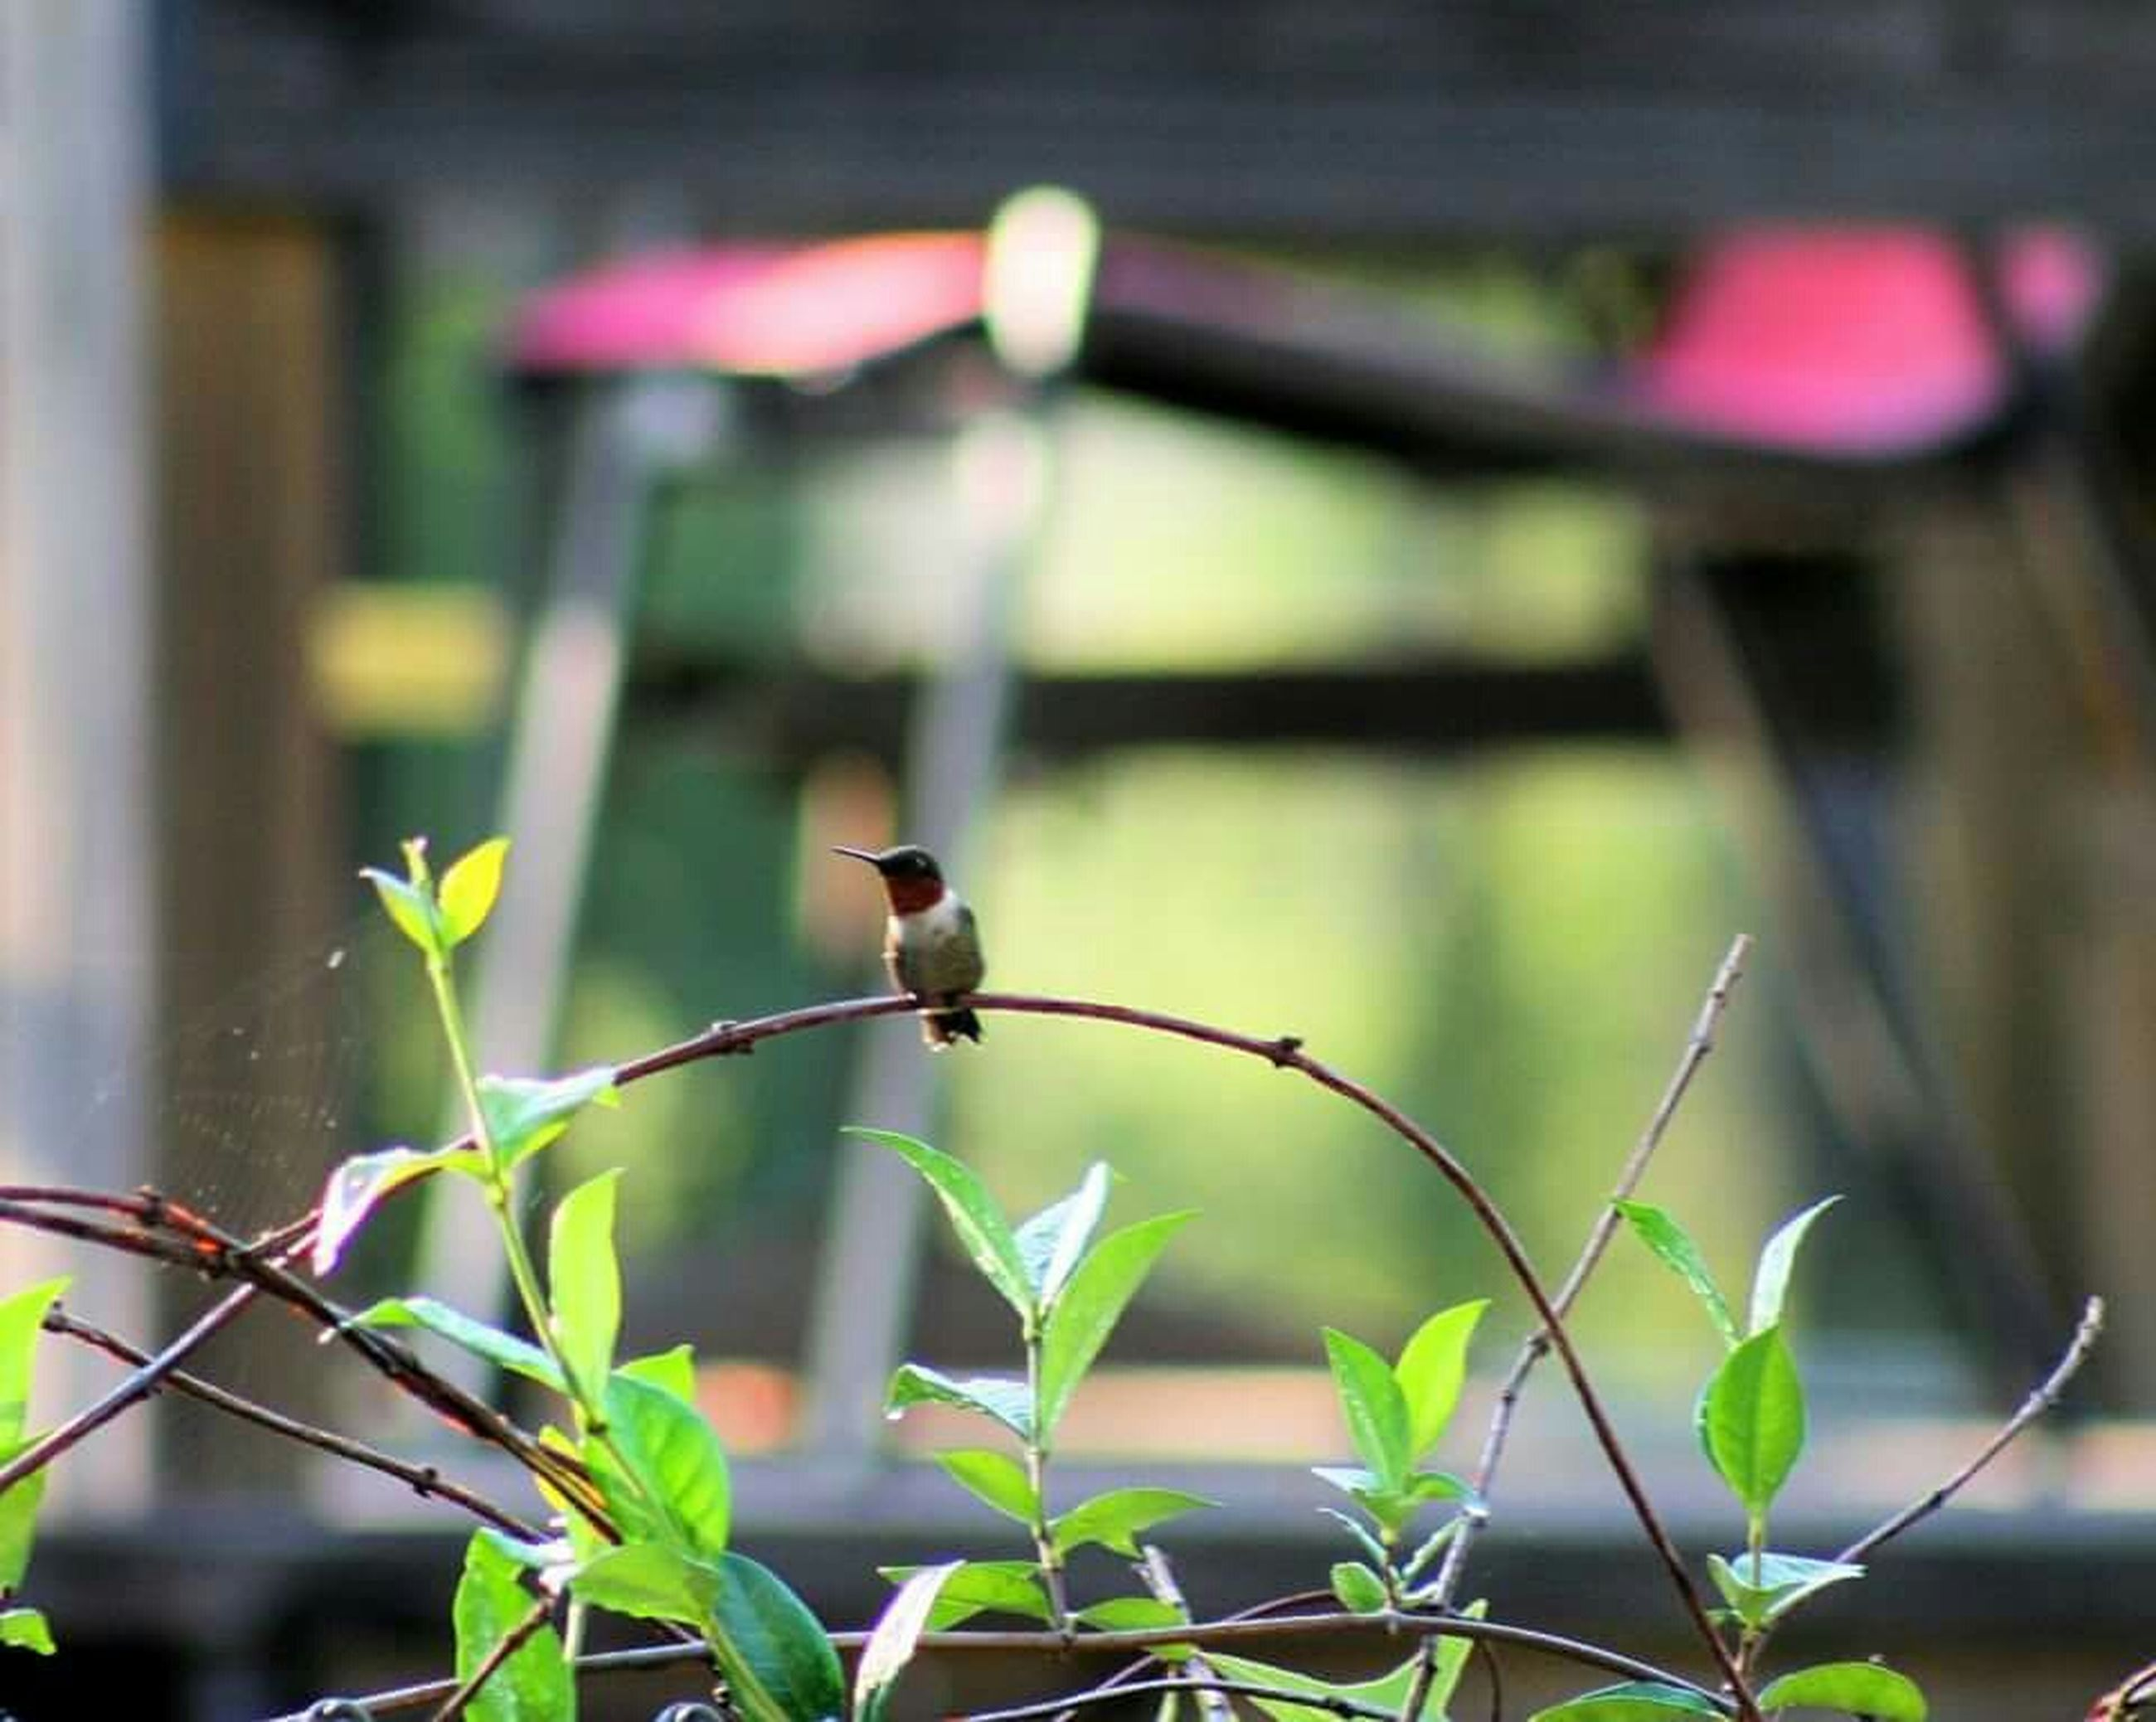 focus on foreground, plant, flower, close-up, growth, leaf, nature, bird, selective focus, perching, stem, animal themes, one animal, fragility, beauty in nature, day, outdoors, animals in the wild, wildlife, fence